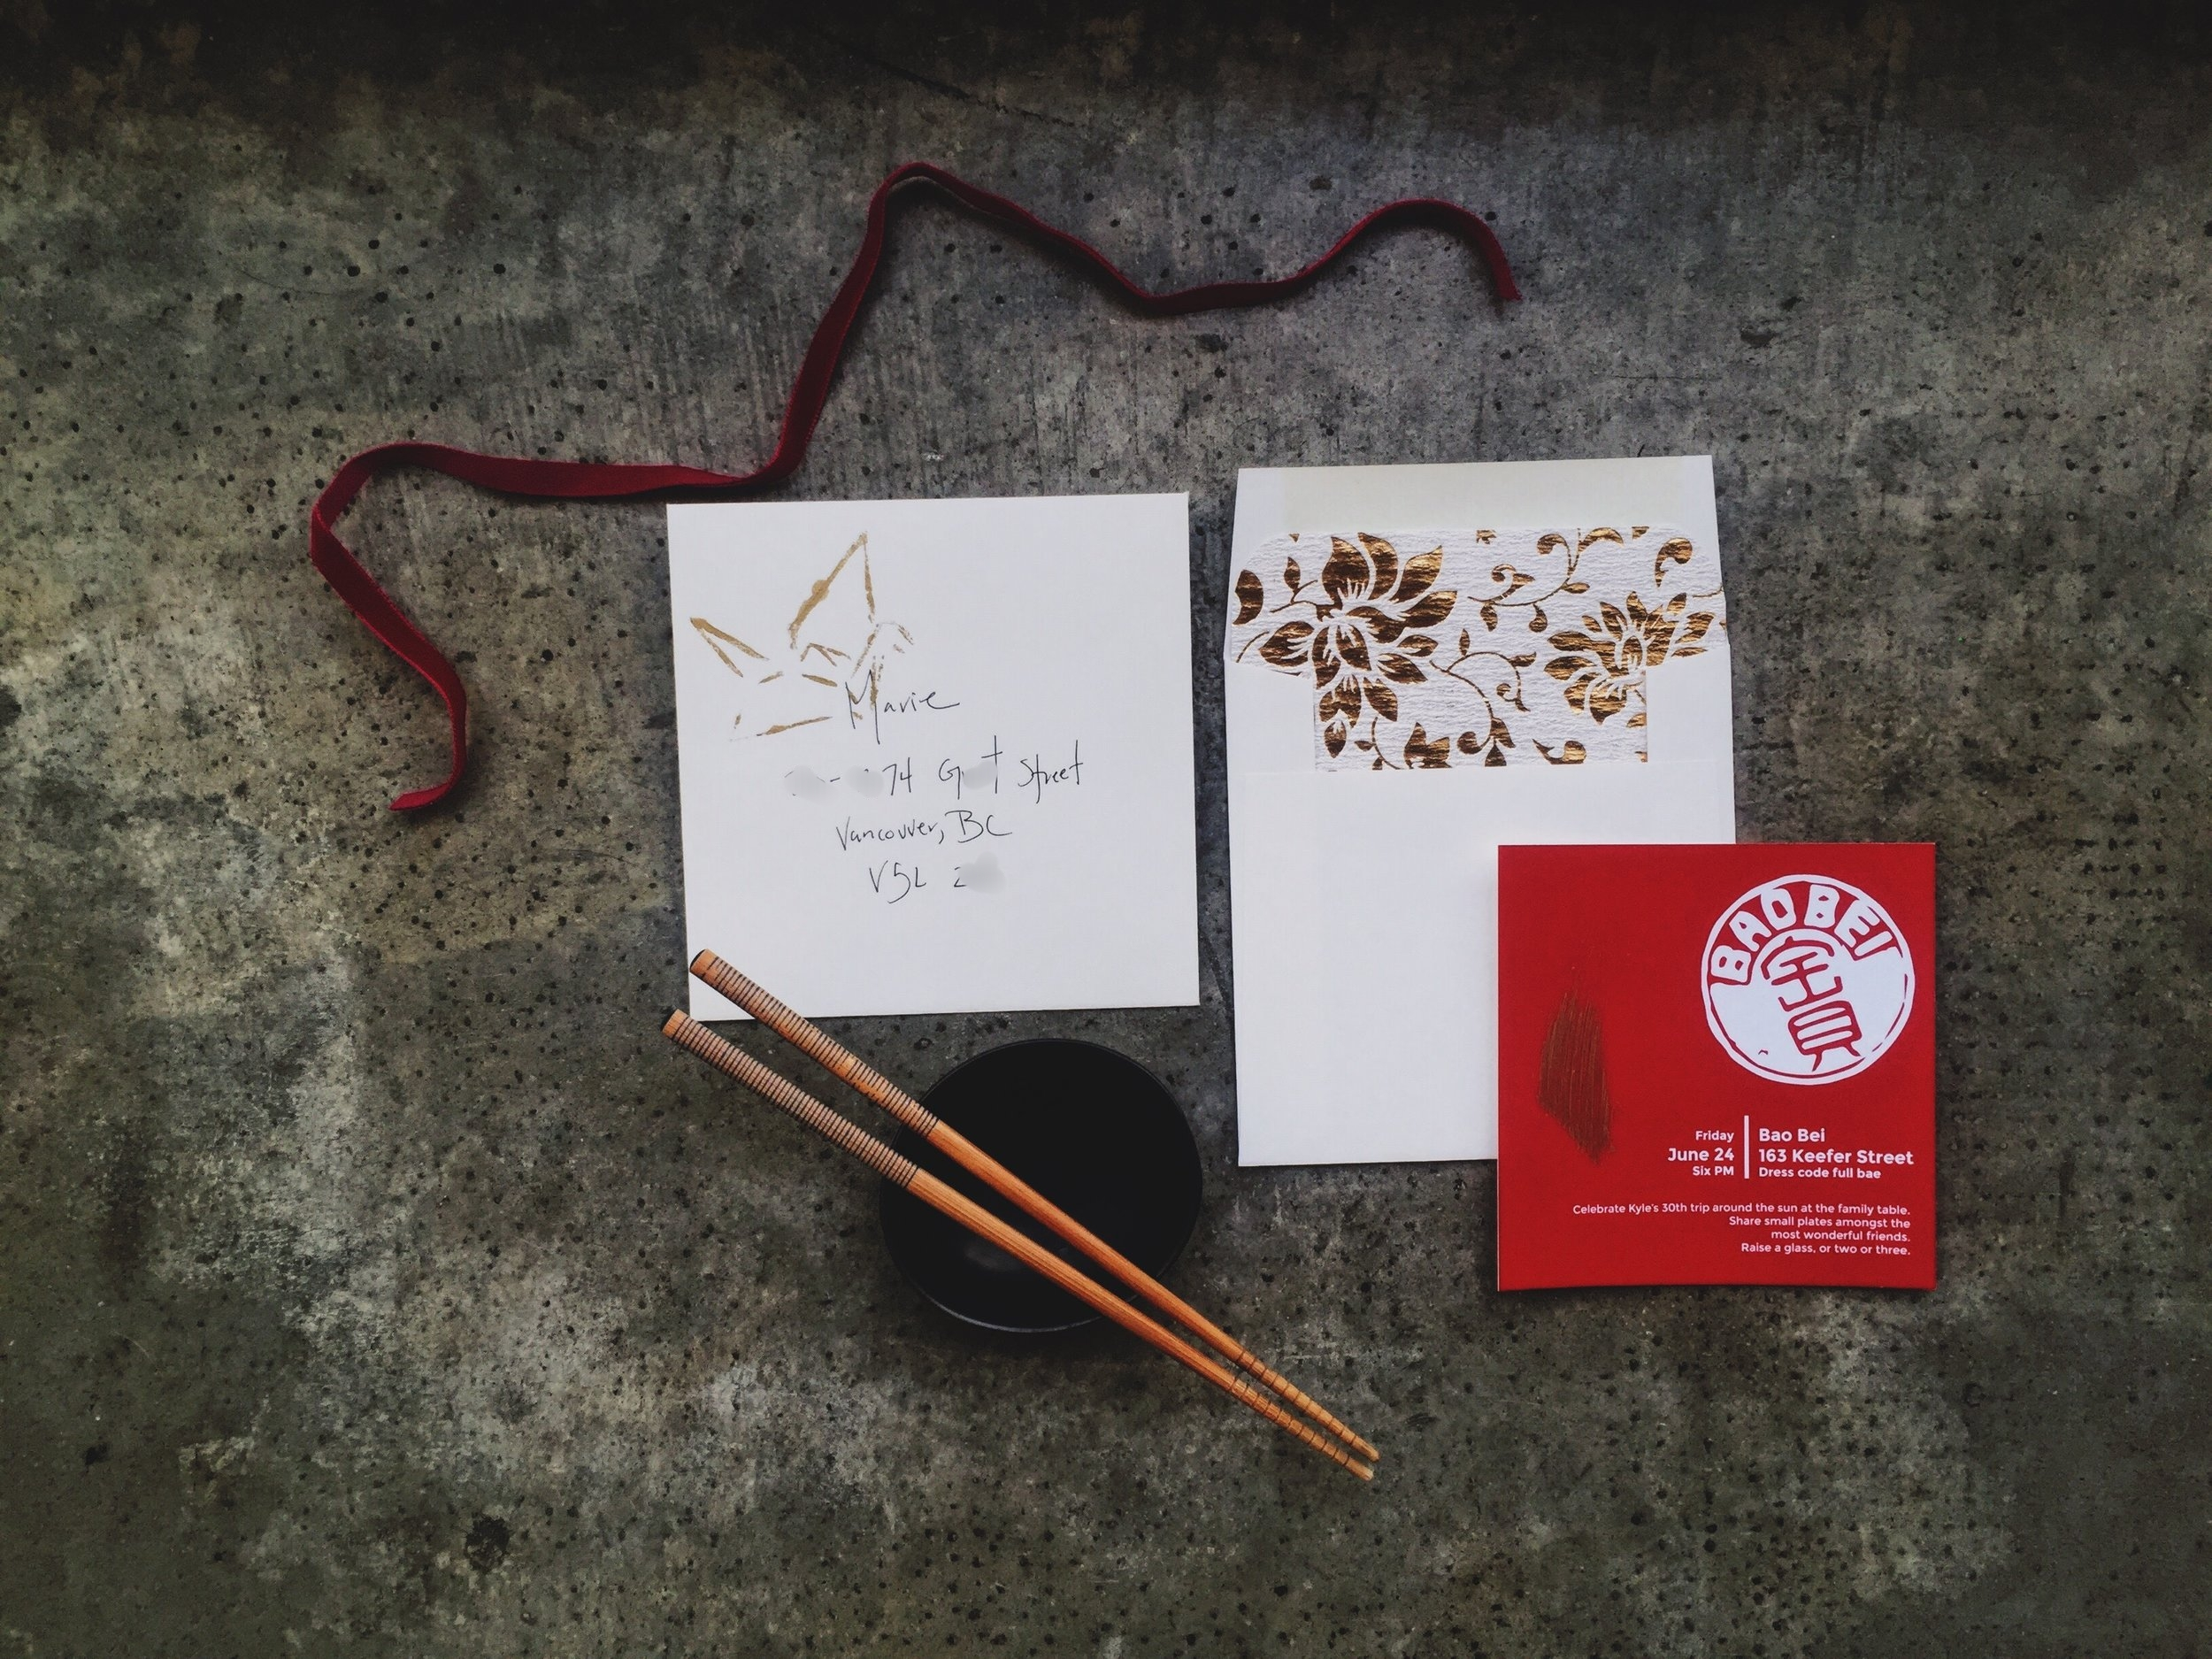 30th birthday invites for a family style meal at Bao Bei Chinese Brasserie